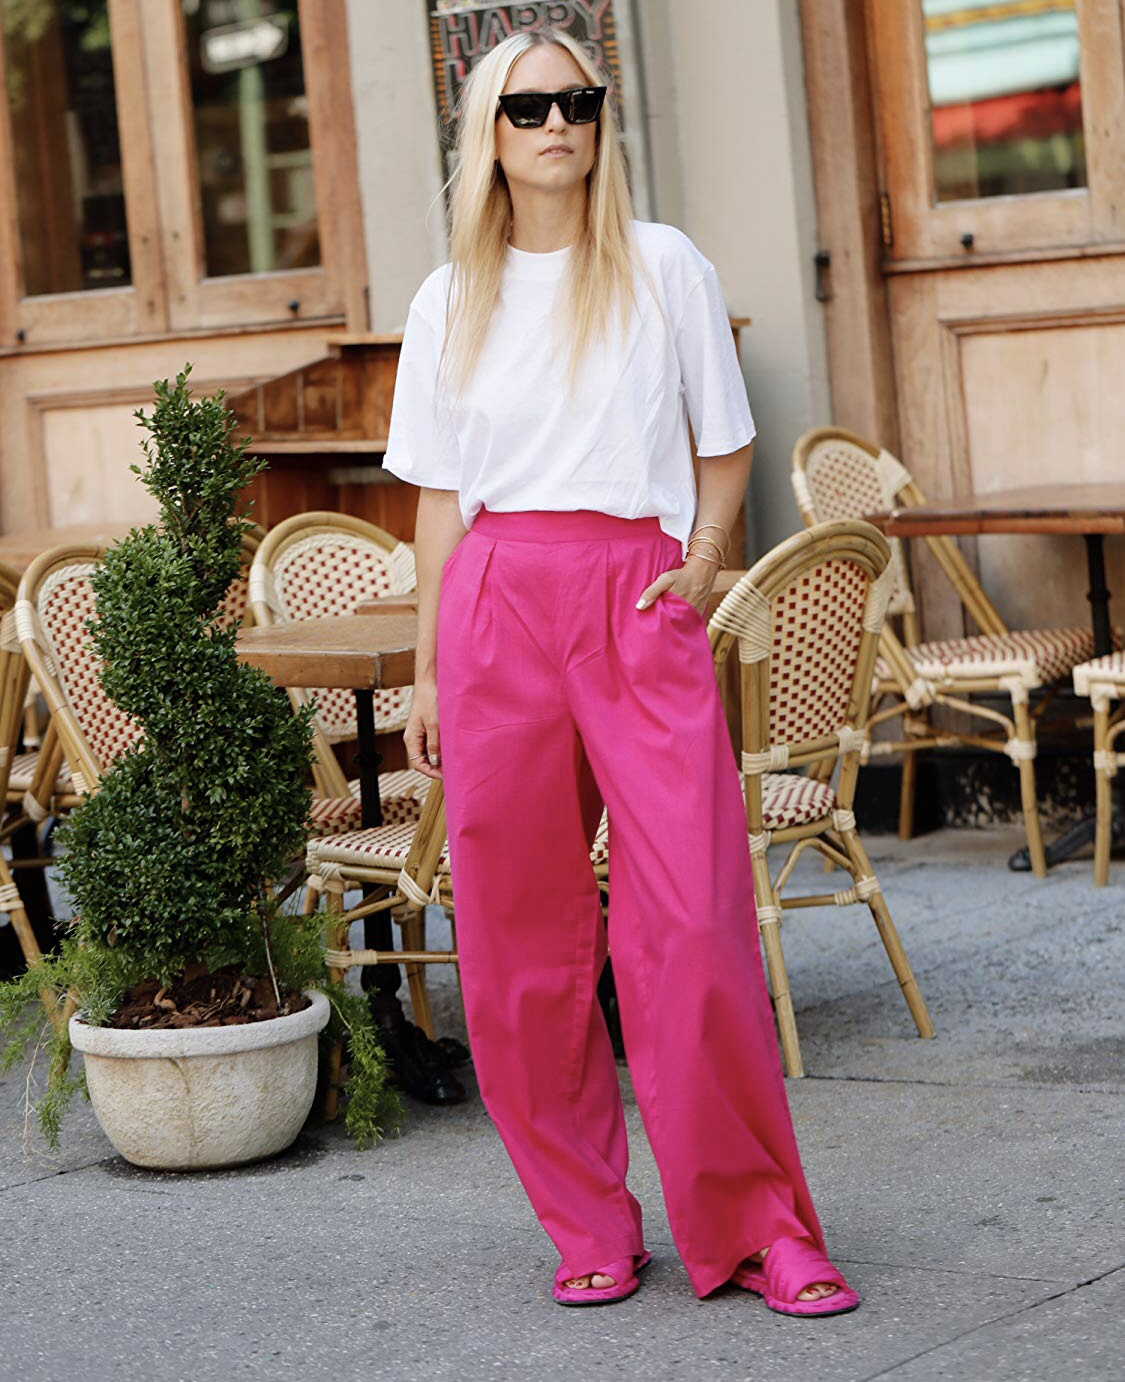 The Drop by Amazon Fashion, pink wide leg pants by @thefashionguitar, $49.90